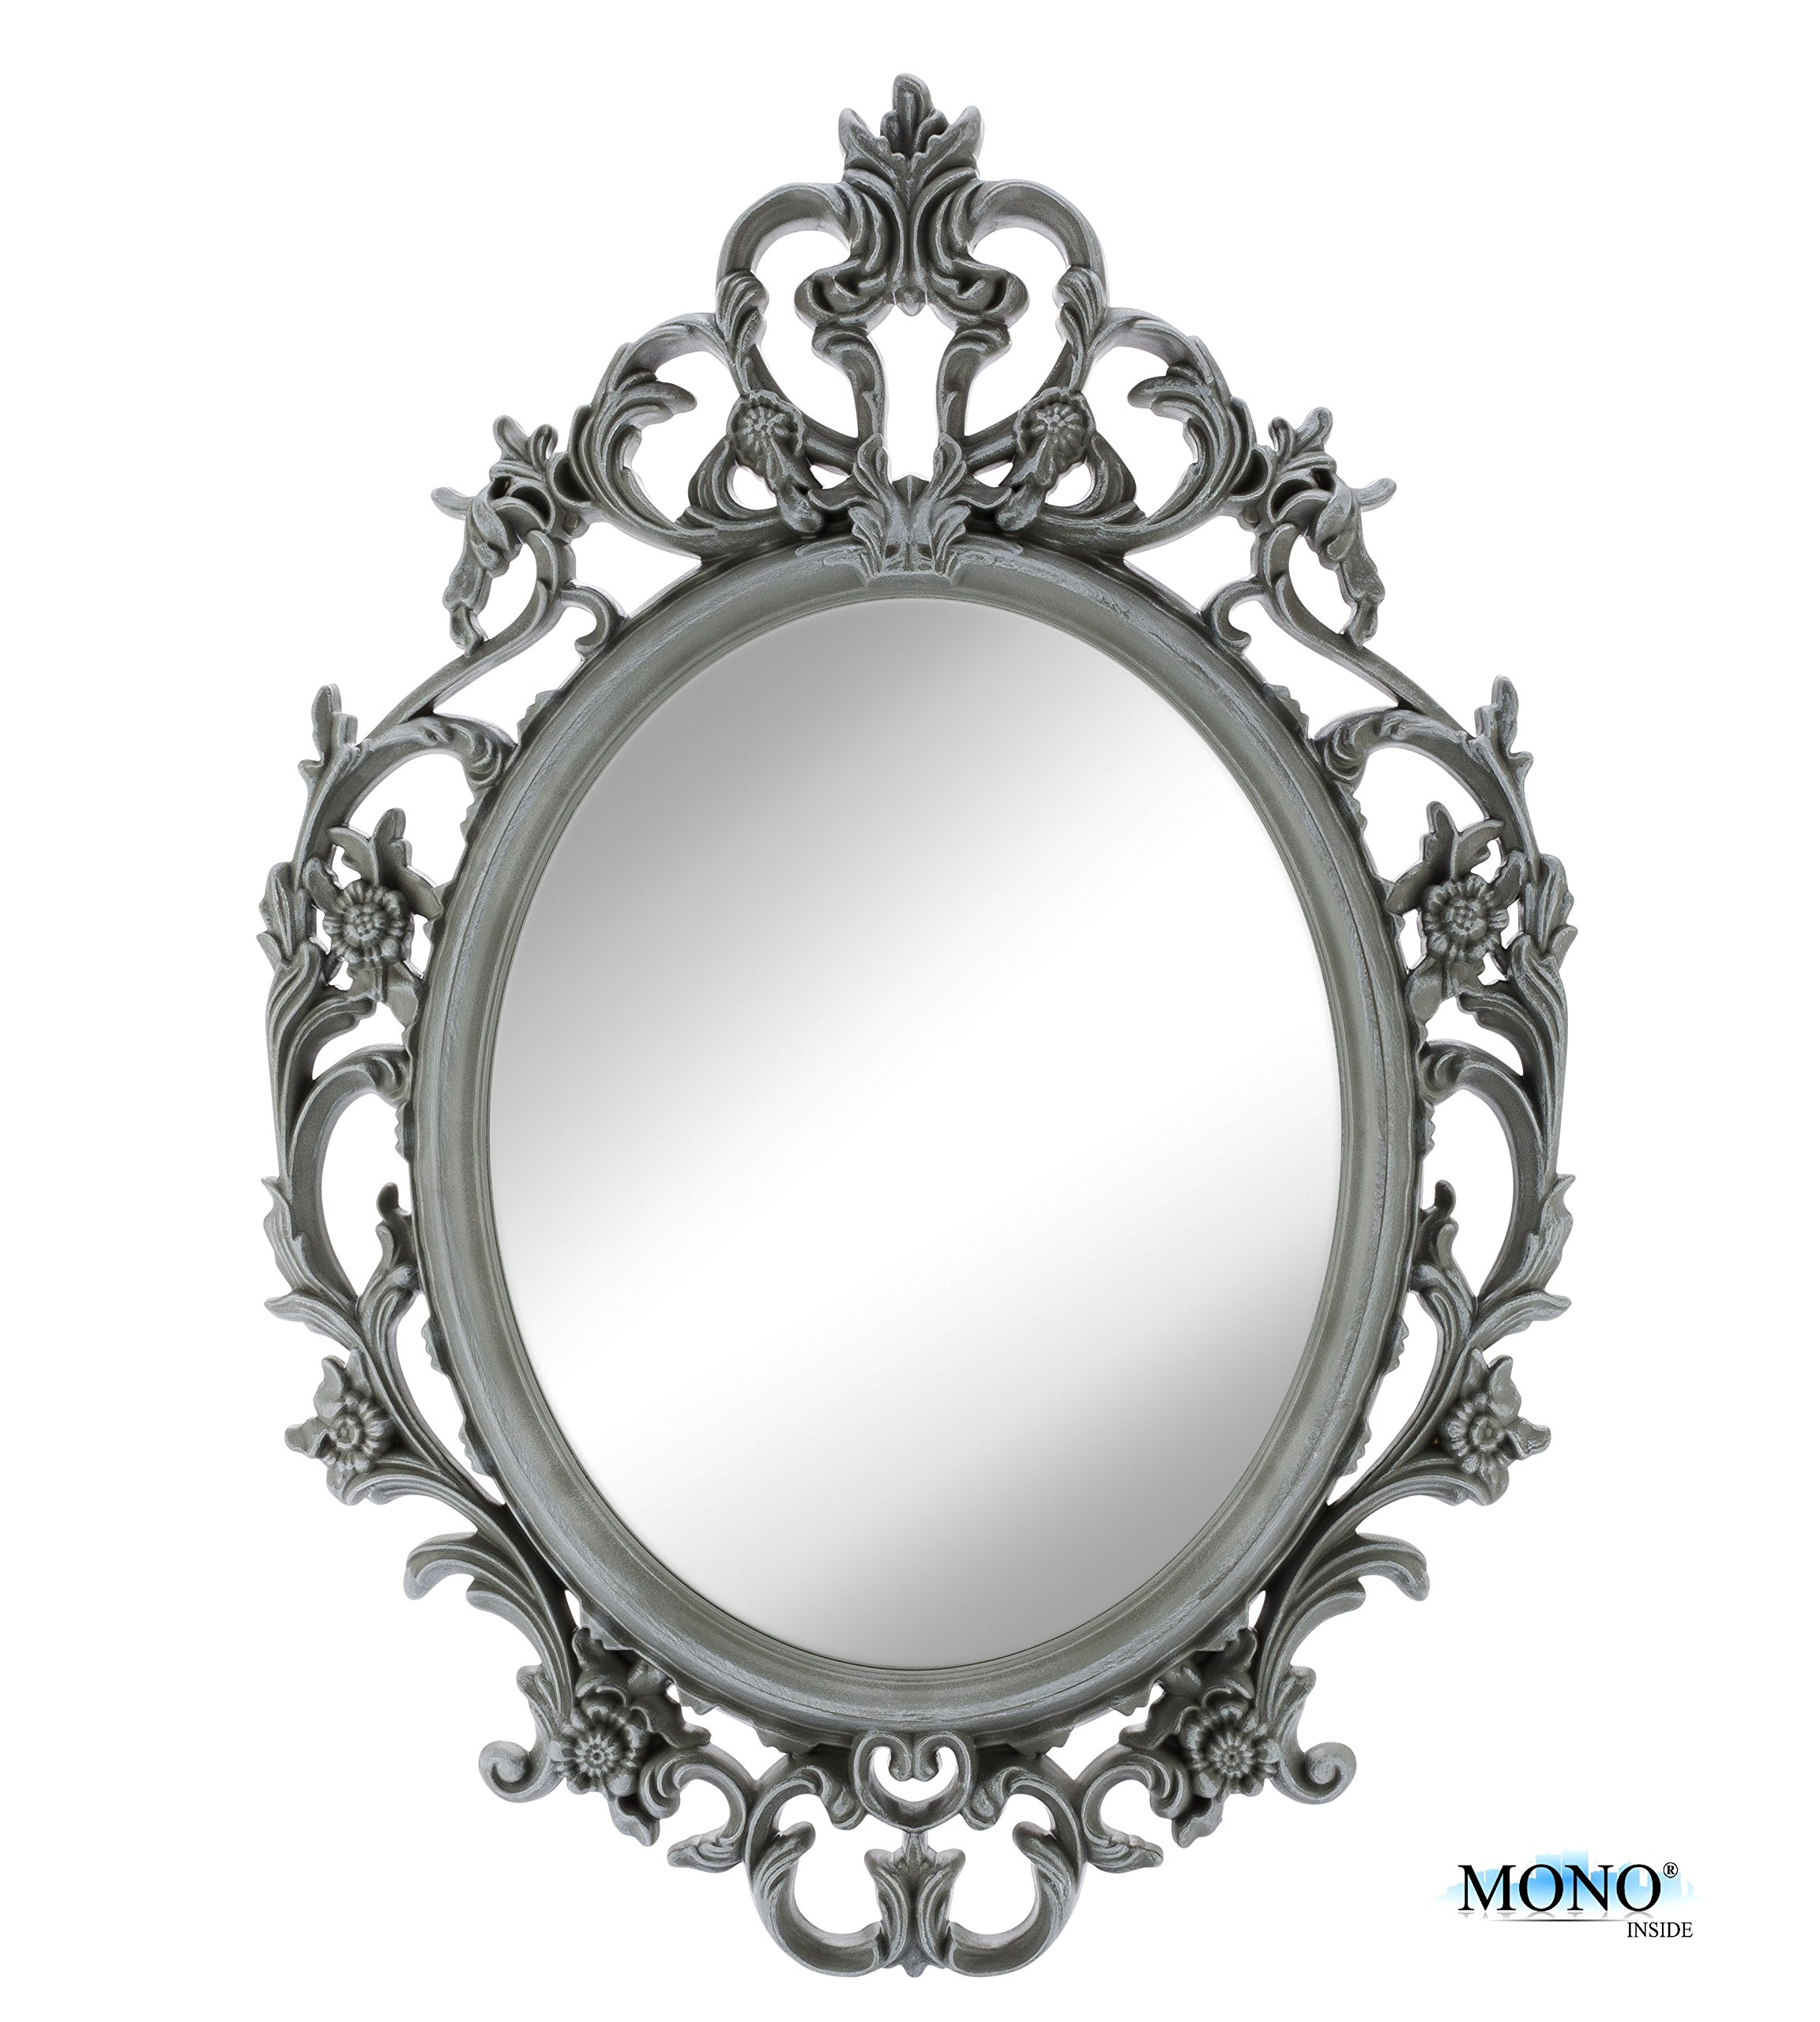 Monoinside 15 framed oval wall mount mirror antique for Fancy oval mirror